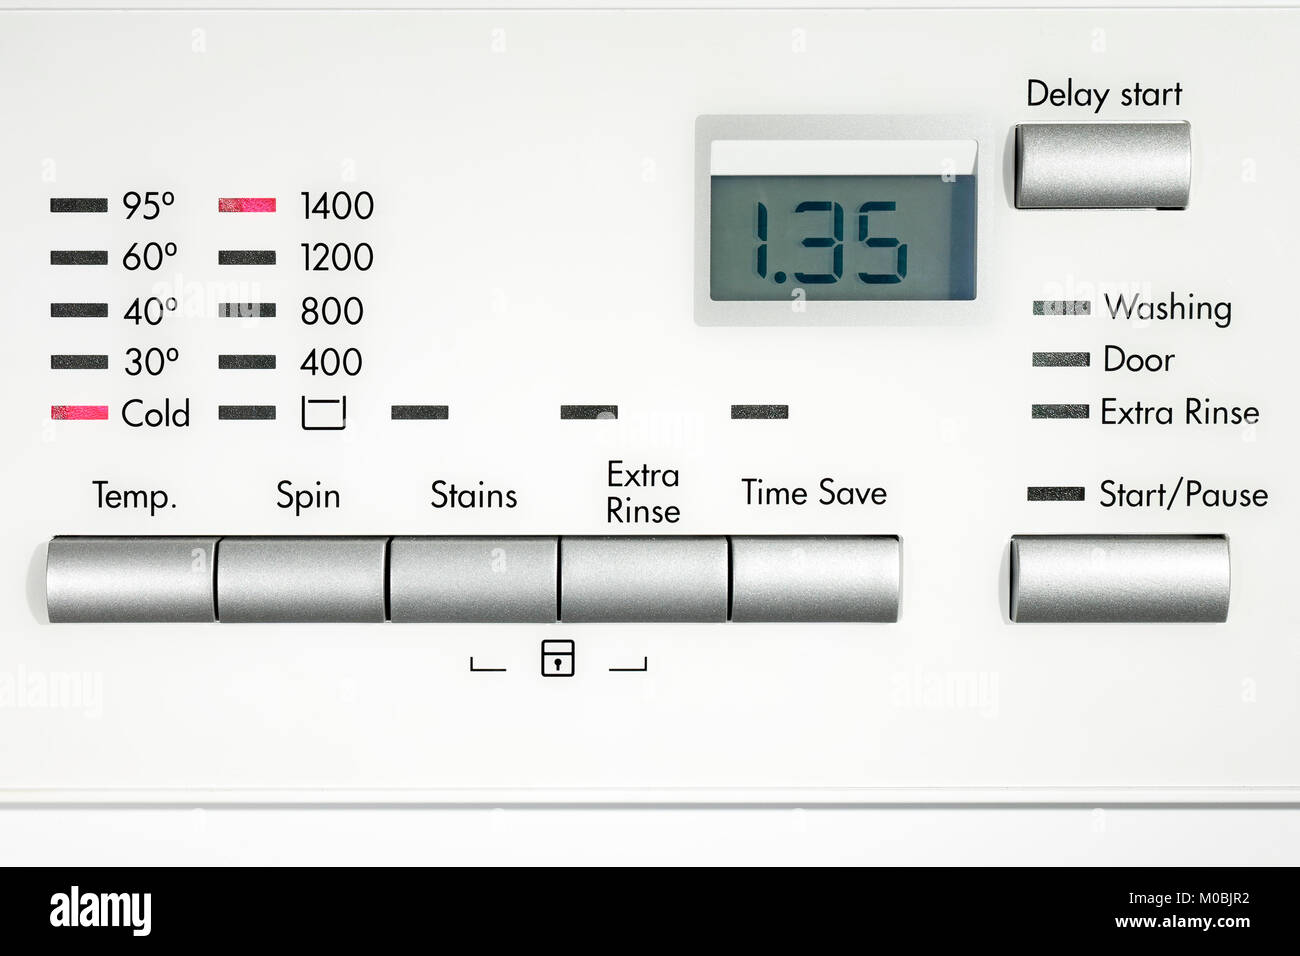 Washing machine set to cold wash and 1400RPM spin speed 1hr 35min 1.35hrs - Stock Image